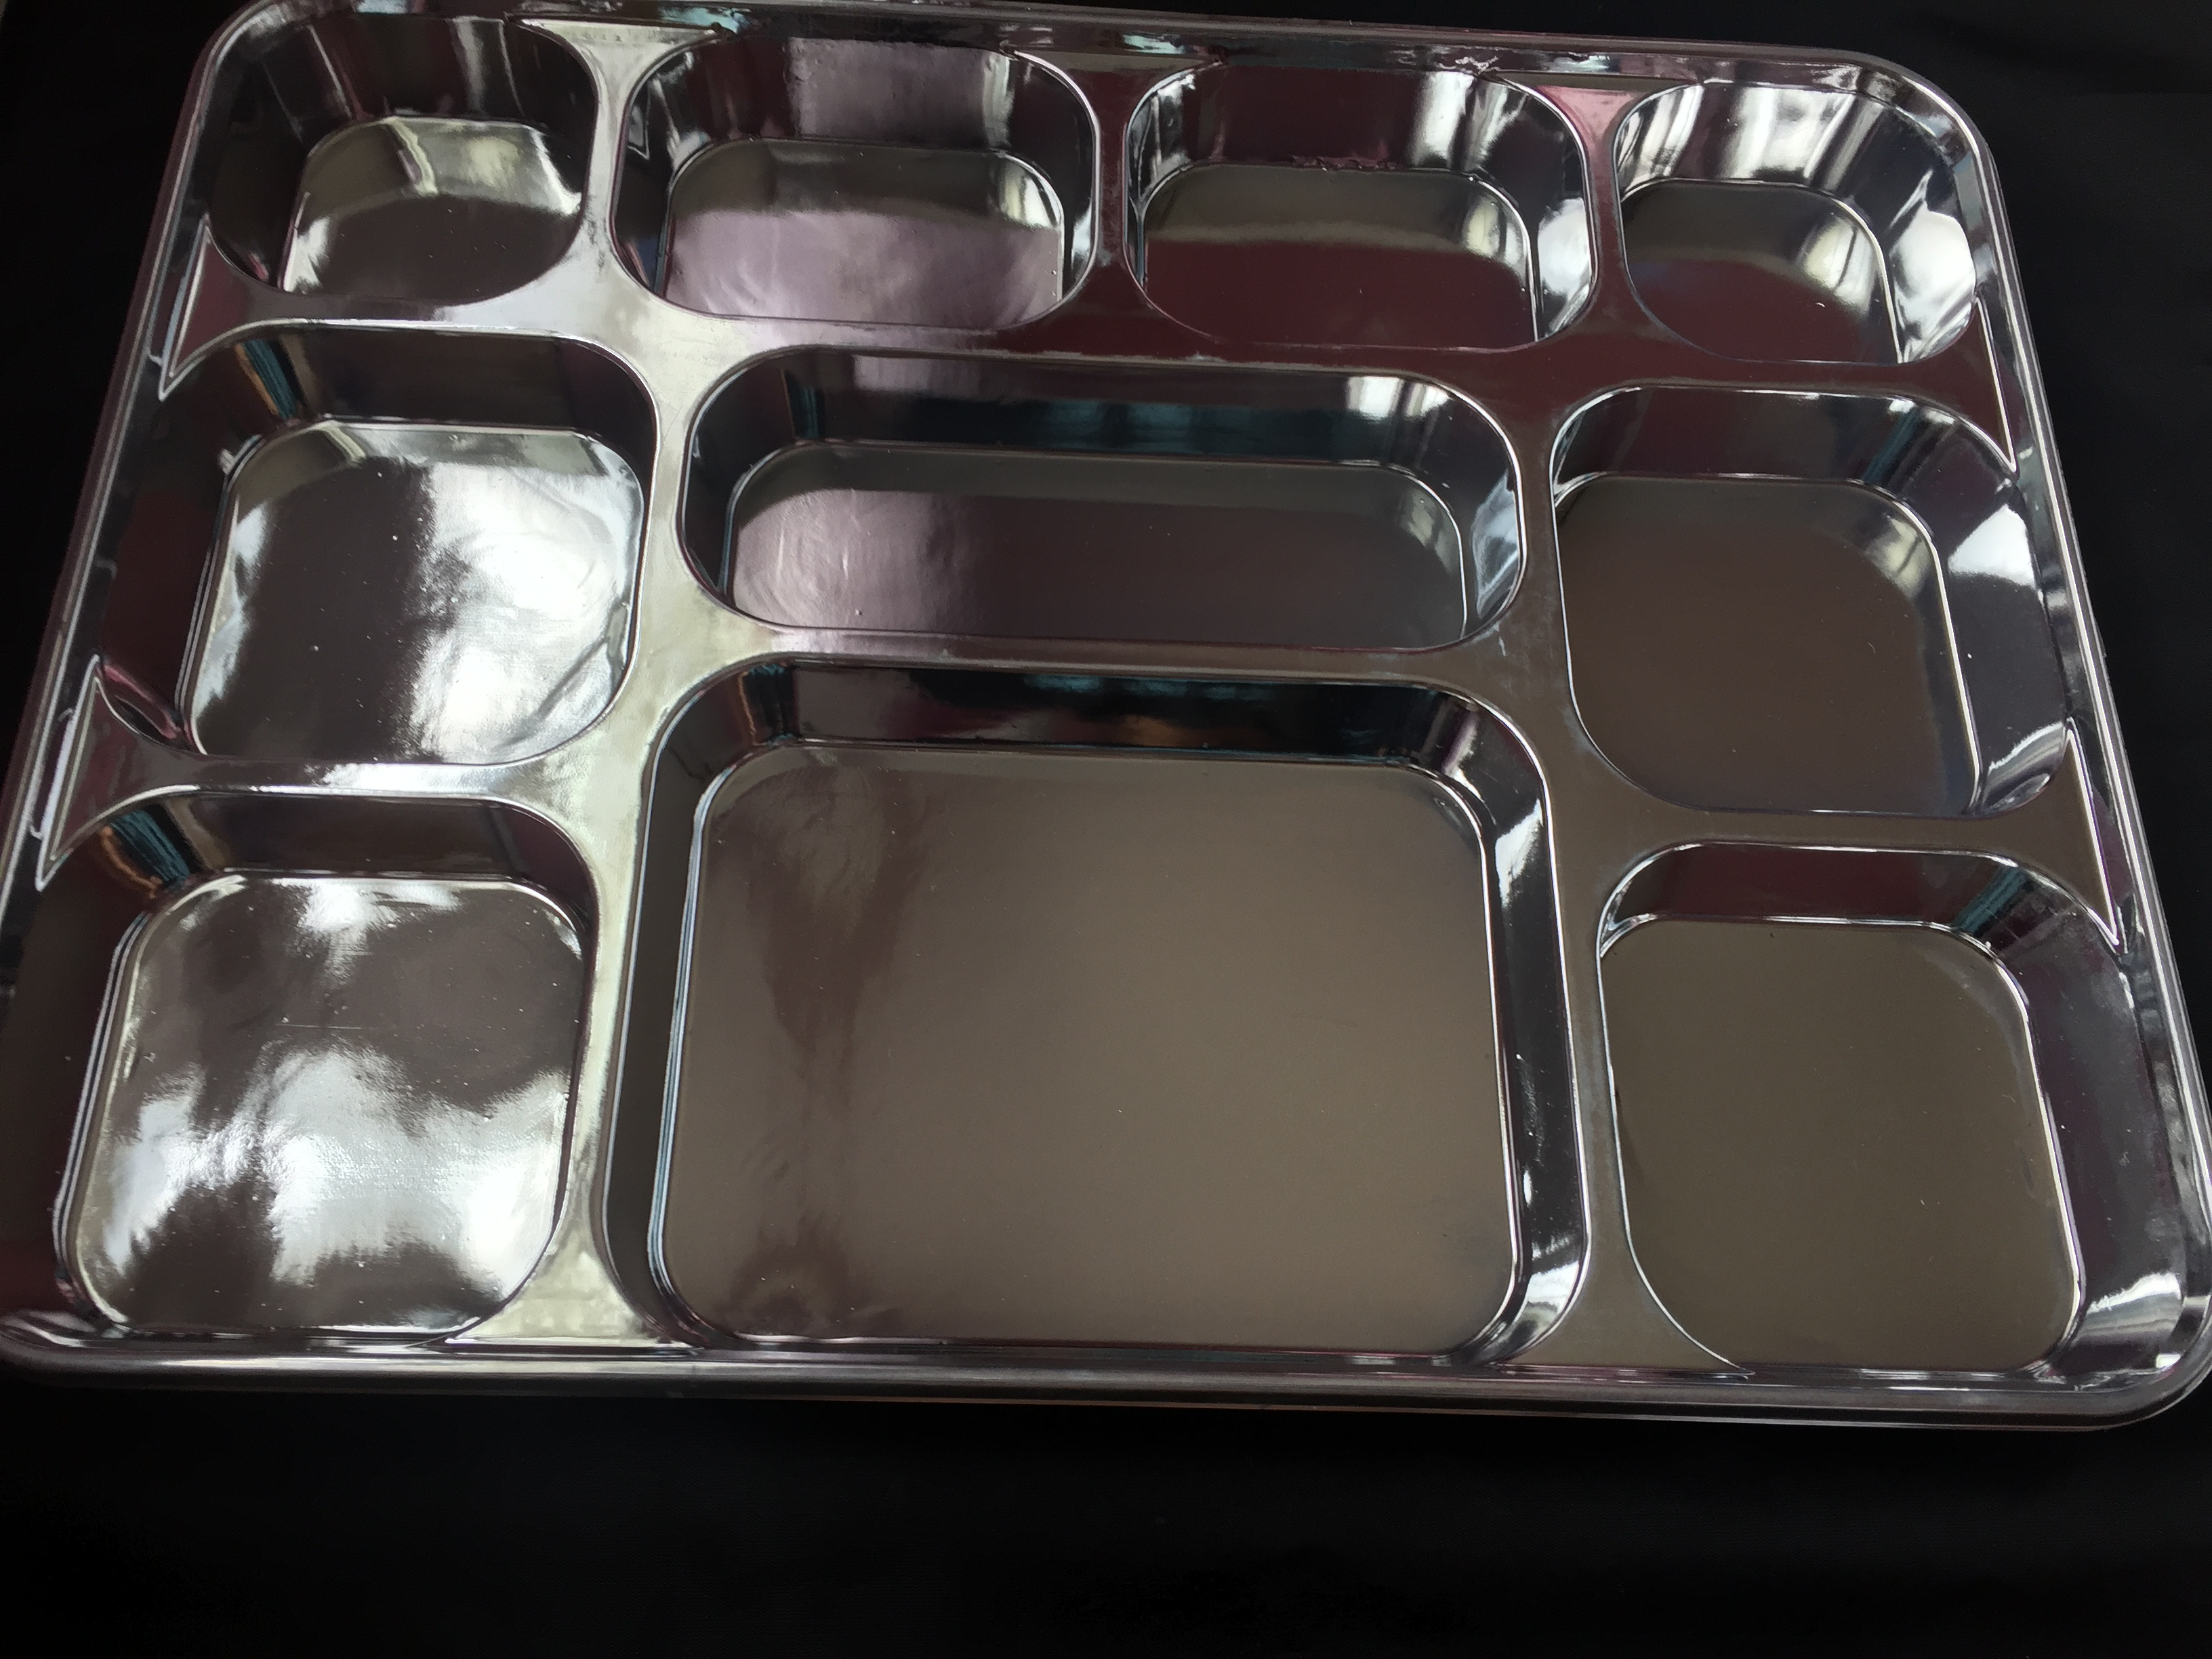 Metallic Silver 10 Compartment Plates